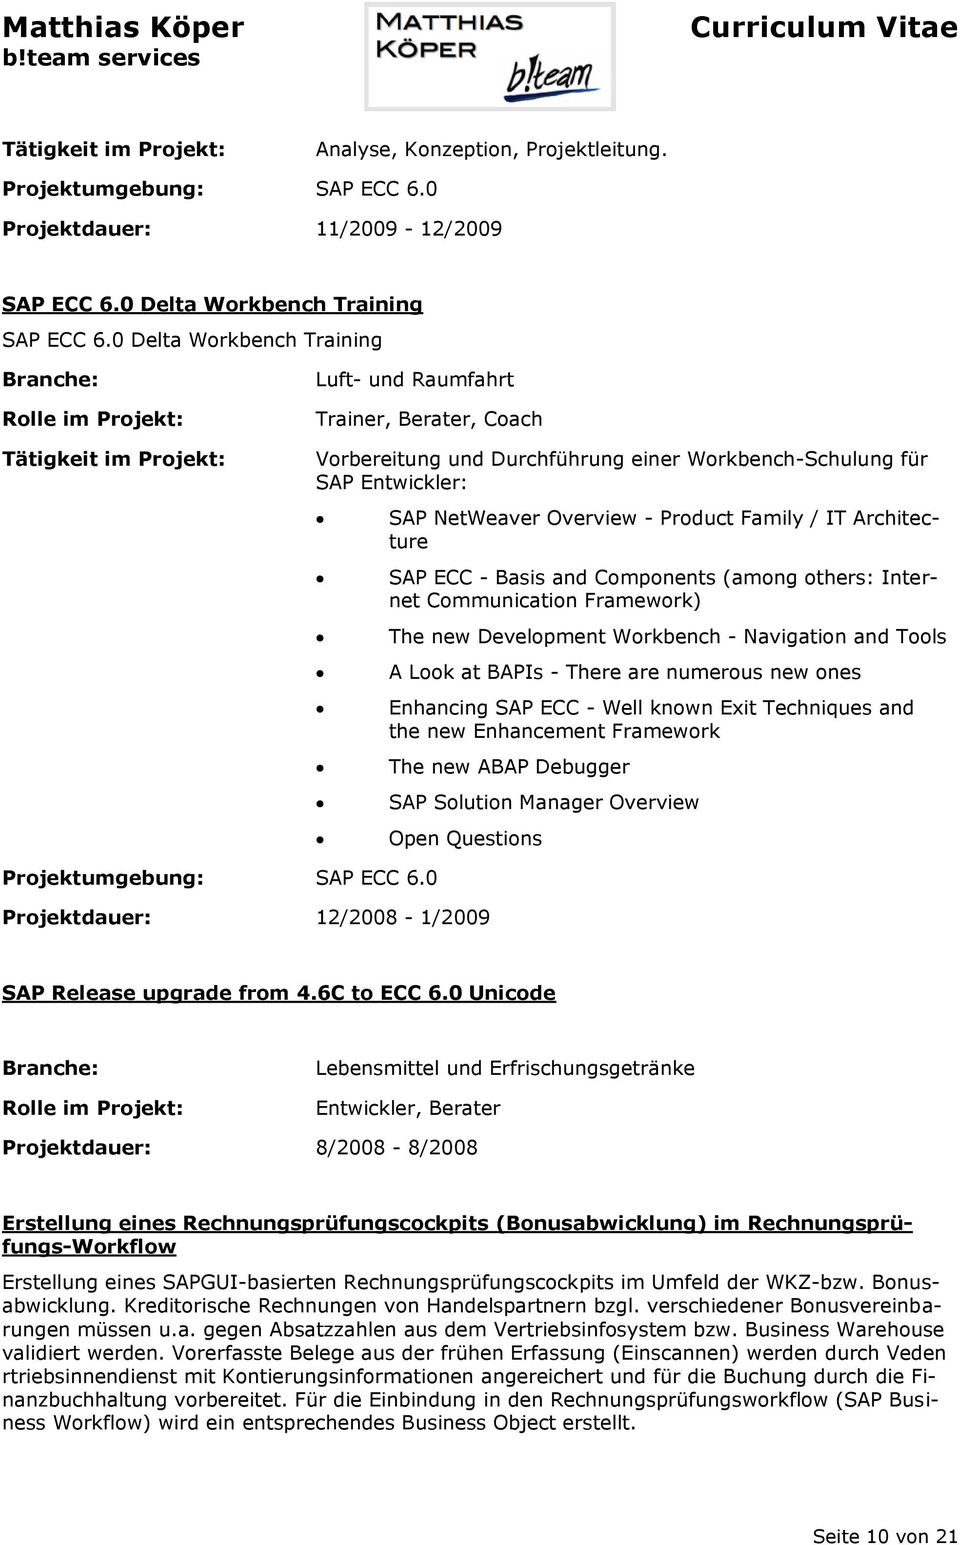 Architecture SAP ECC - Basis and Components (among others: Internet Communication Framework) The new Development Workbench - Navigation and Tools A Look at BAPIs - There are numerous new ones